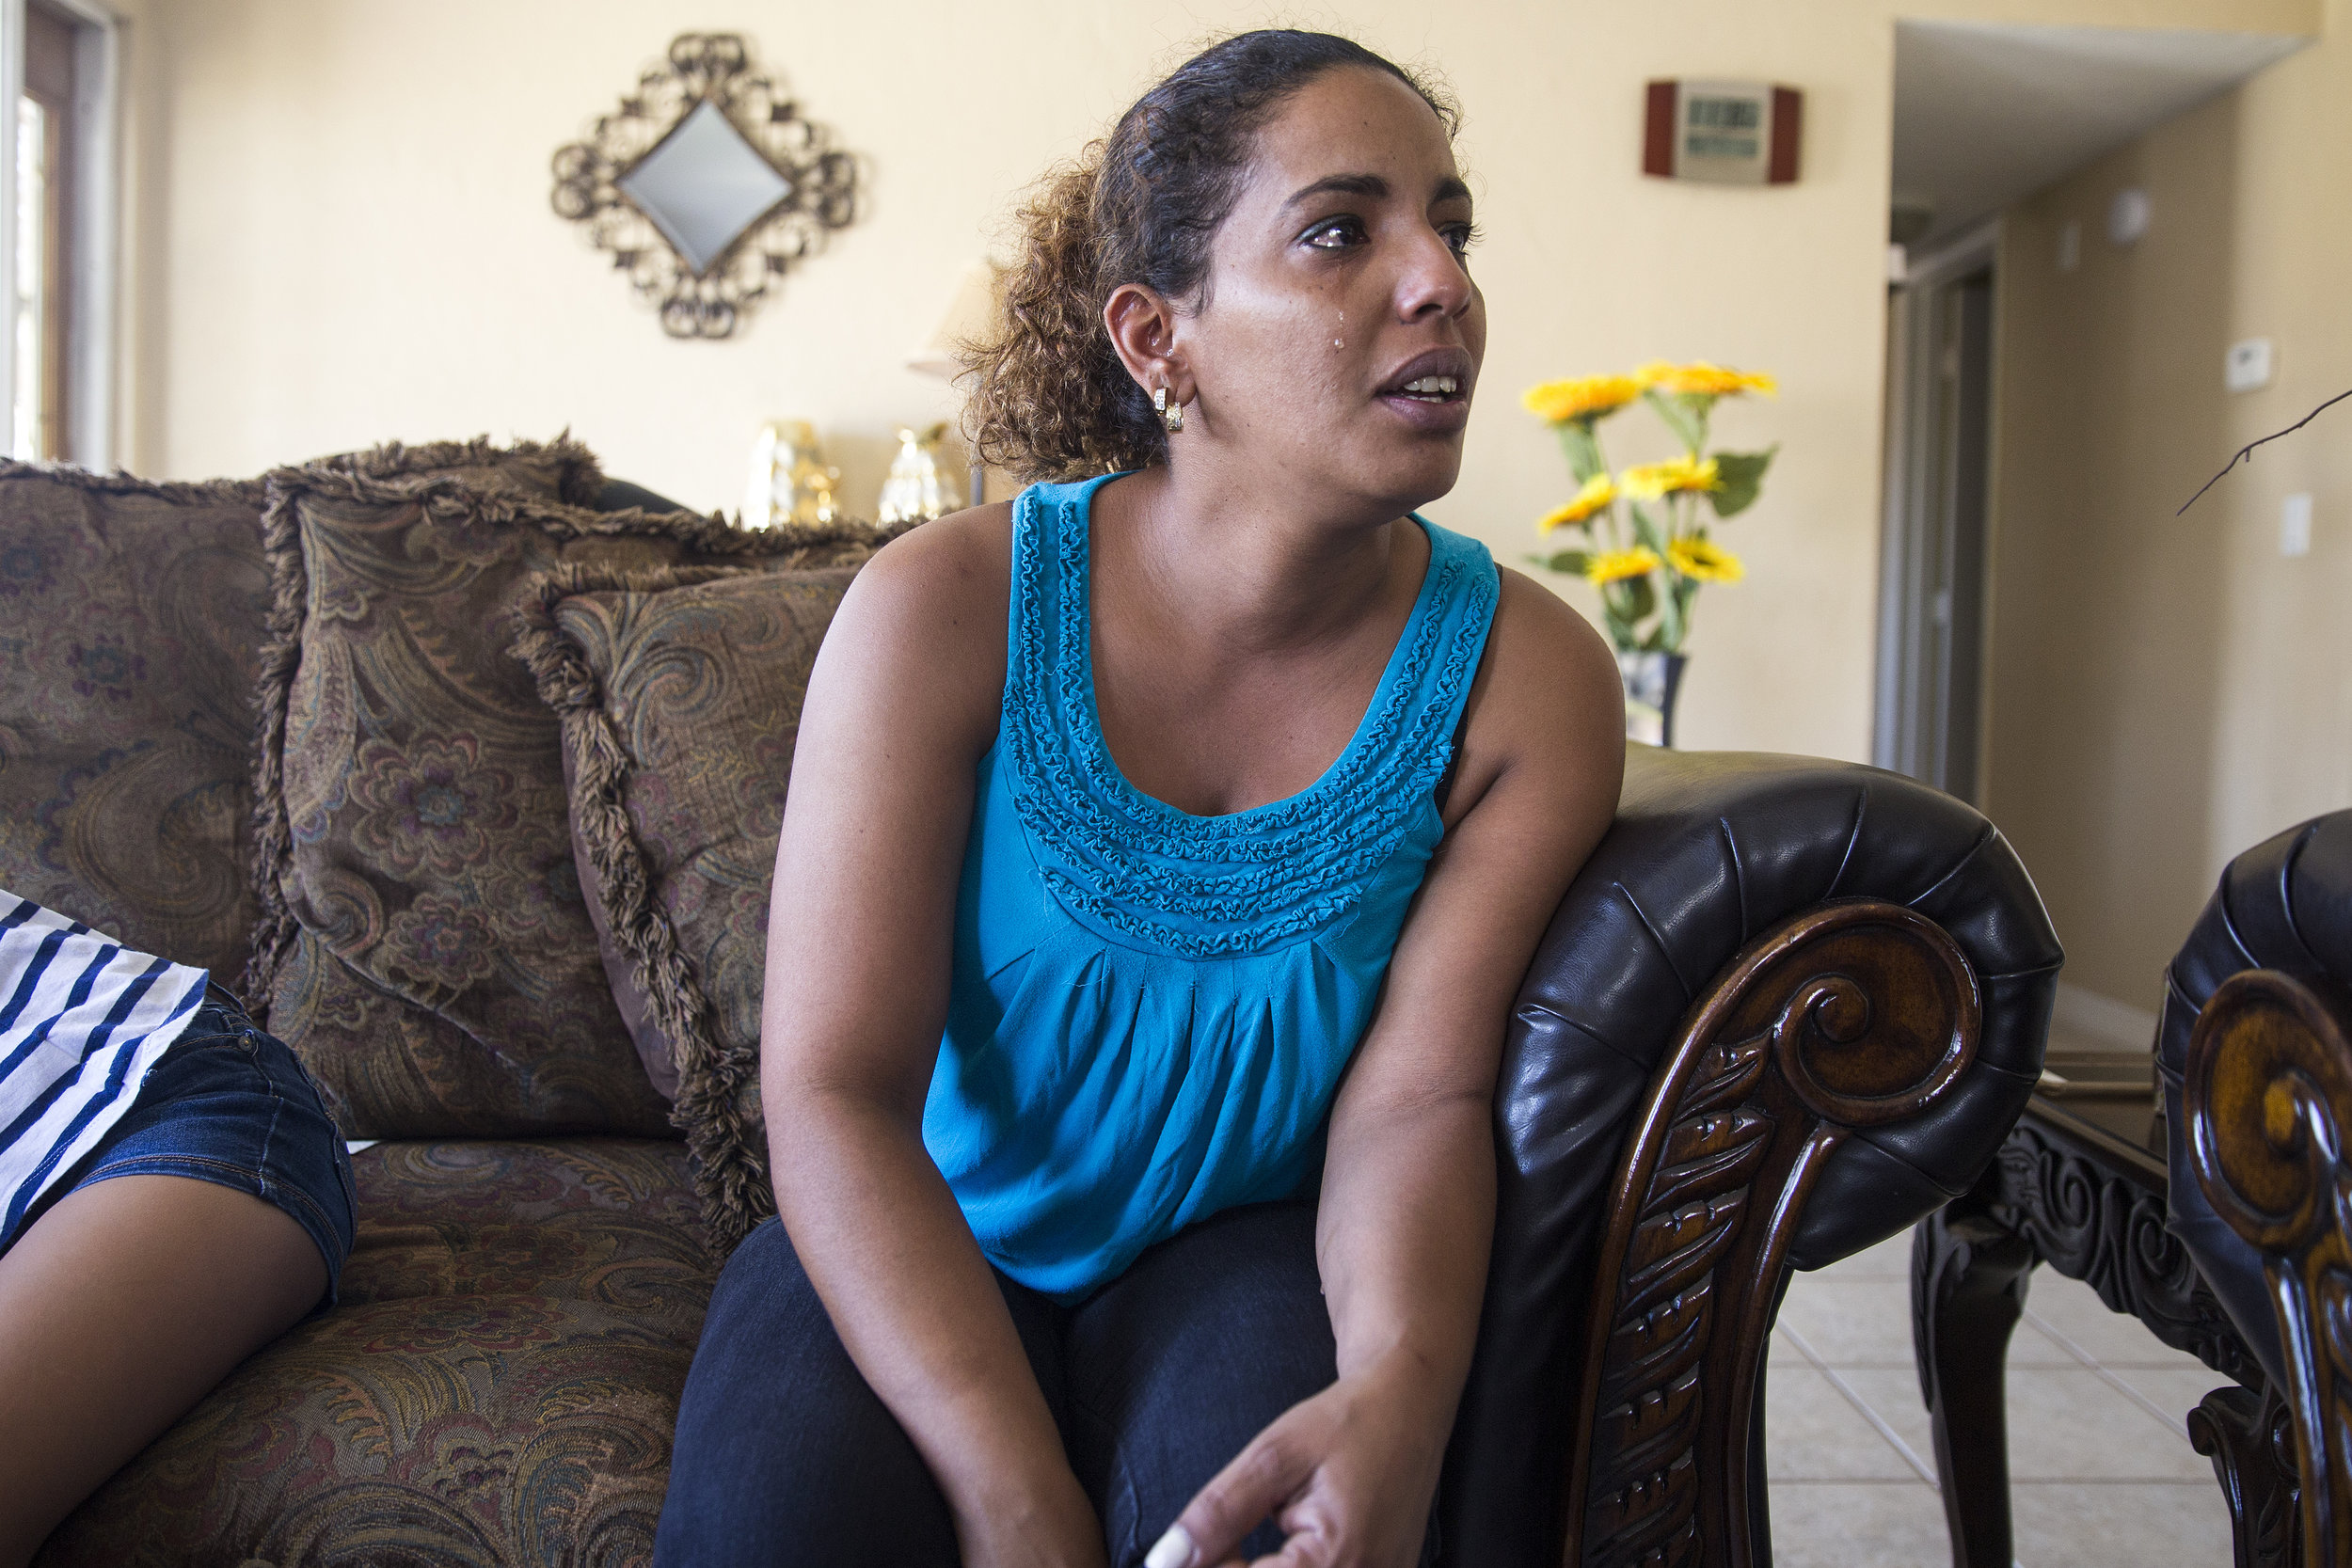 Lidicis Garcia Villafaña cries while remembering her partner of 14 years, Yusdel Moreno Iglesias, who died of a suspected carbon monoxide poisoning this past week.